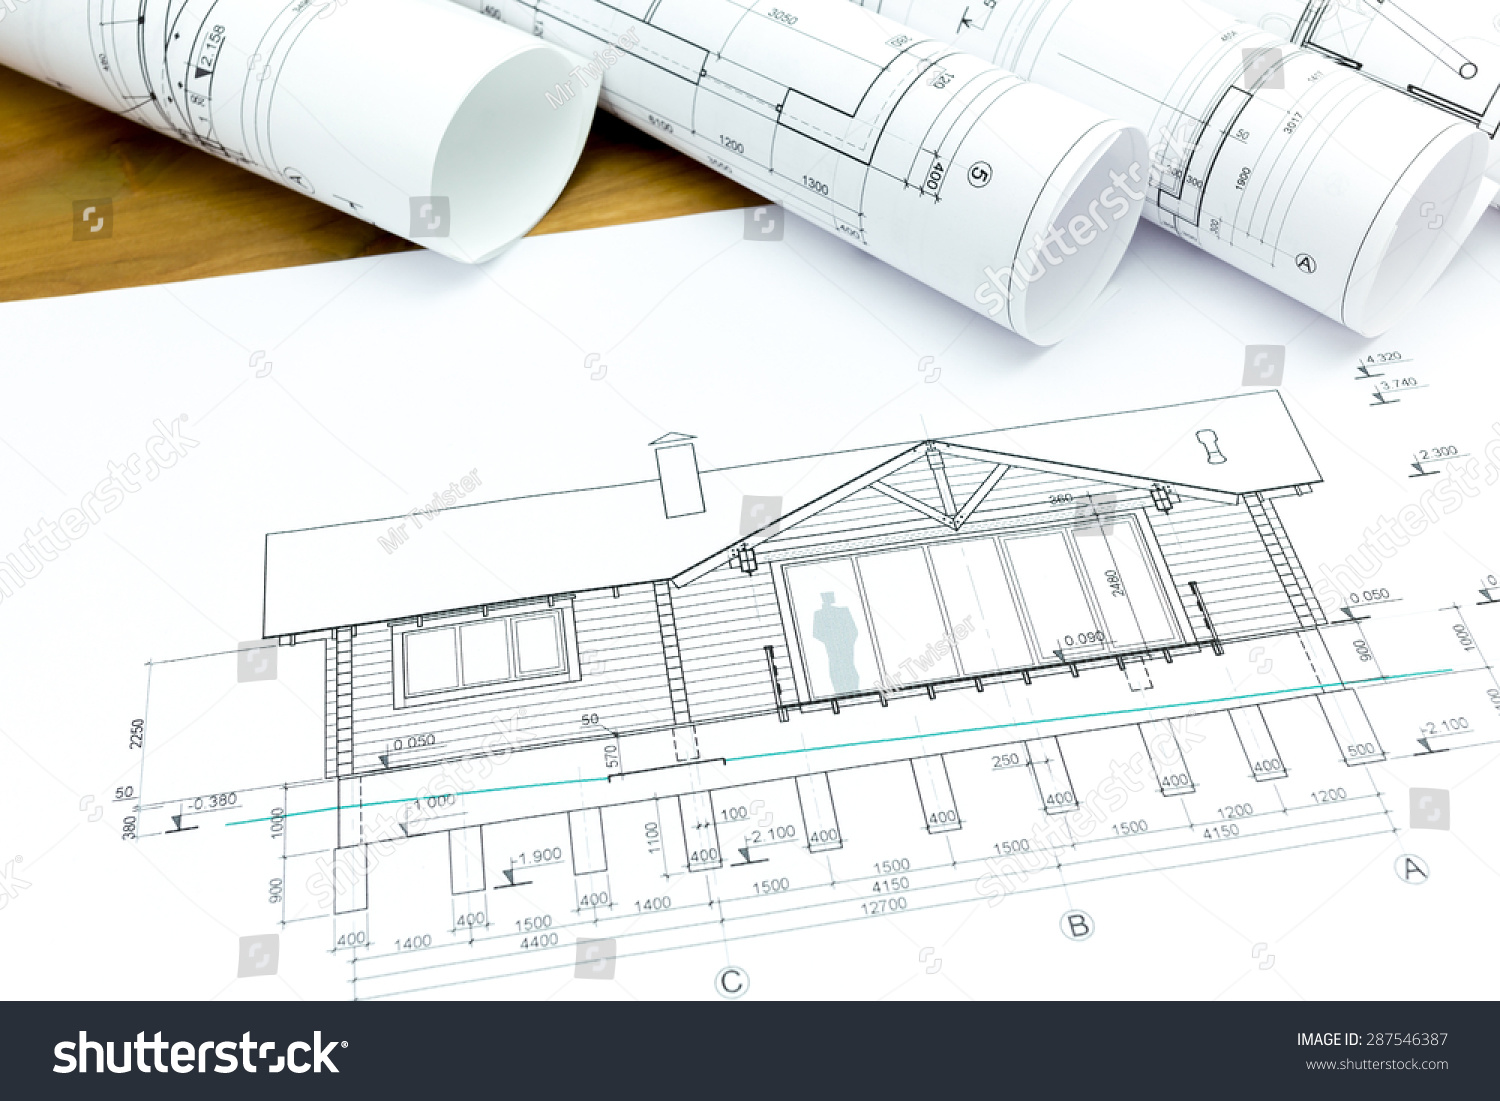 architectural blueprints and construction plans rolls of